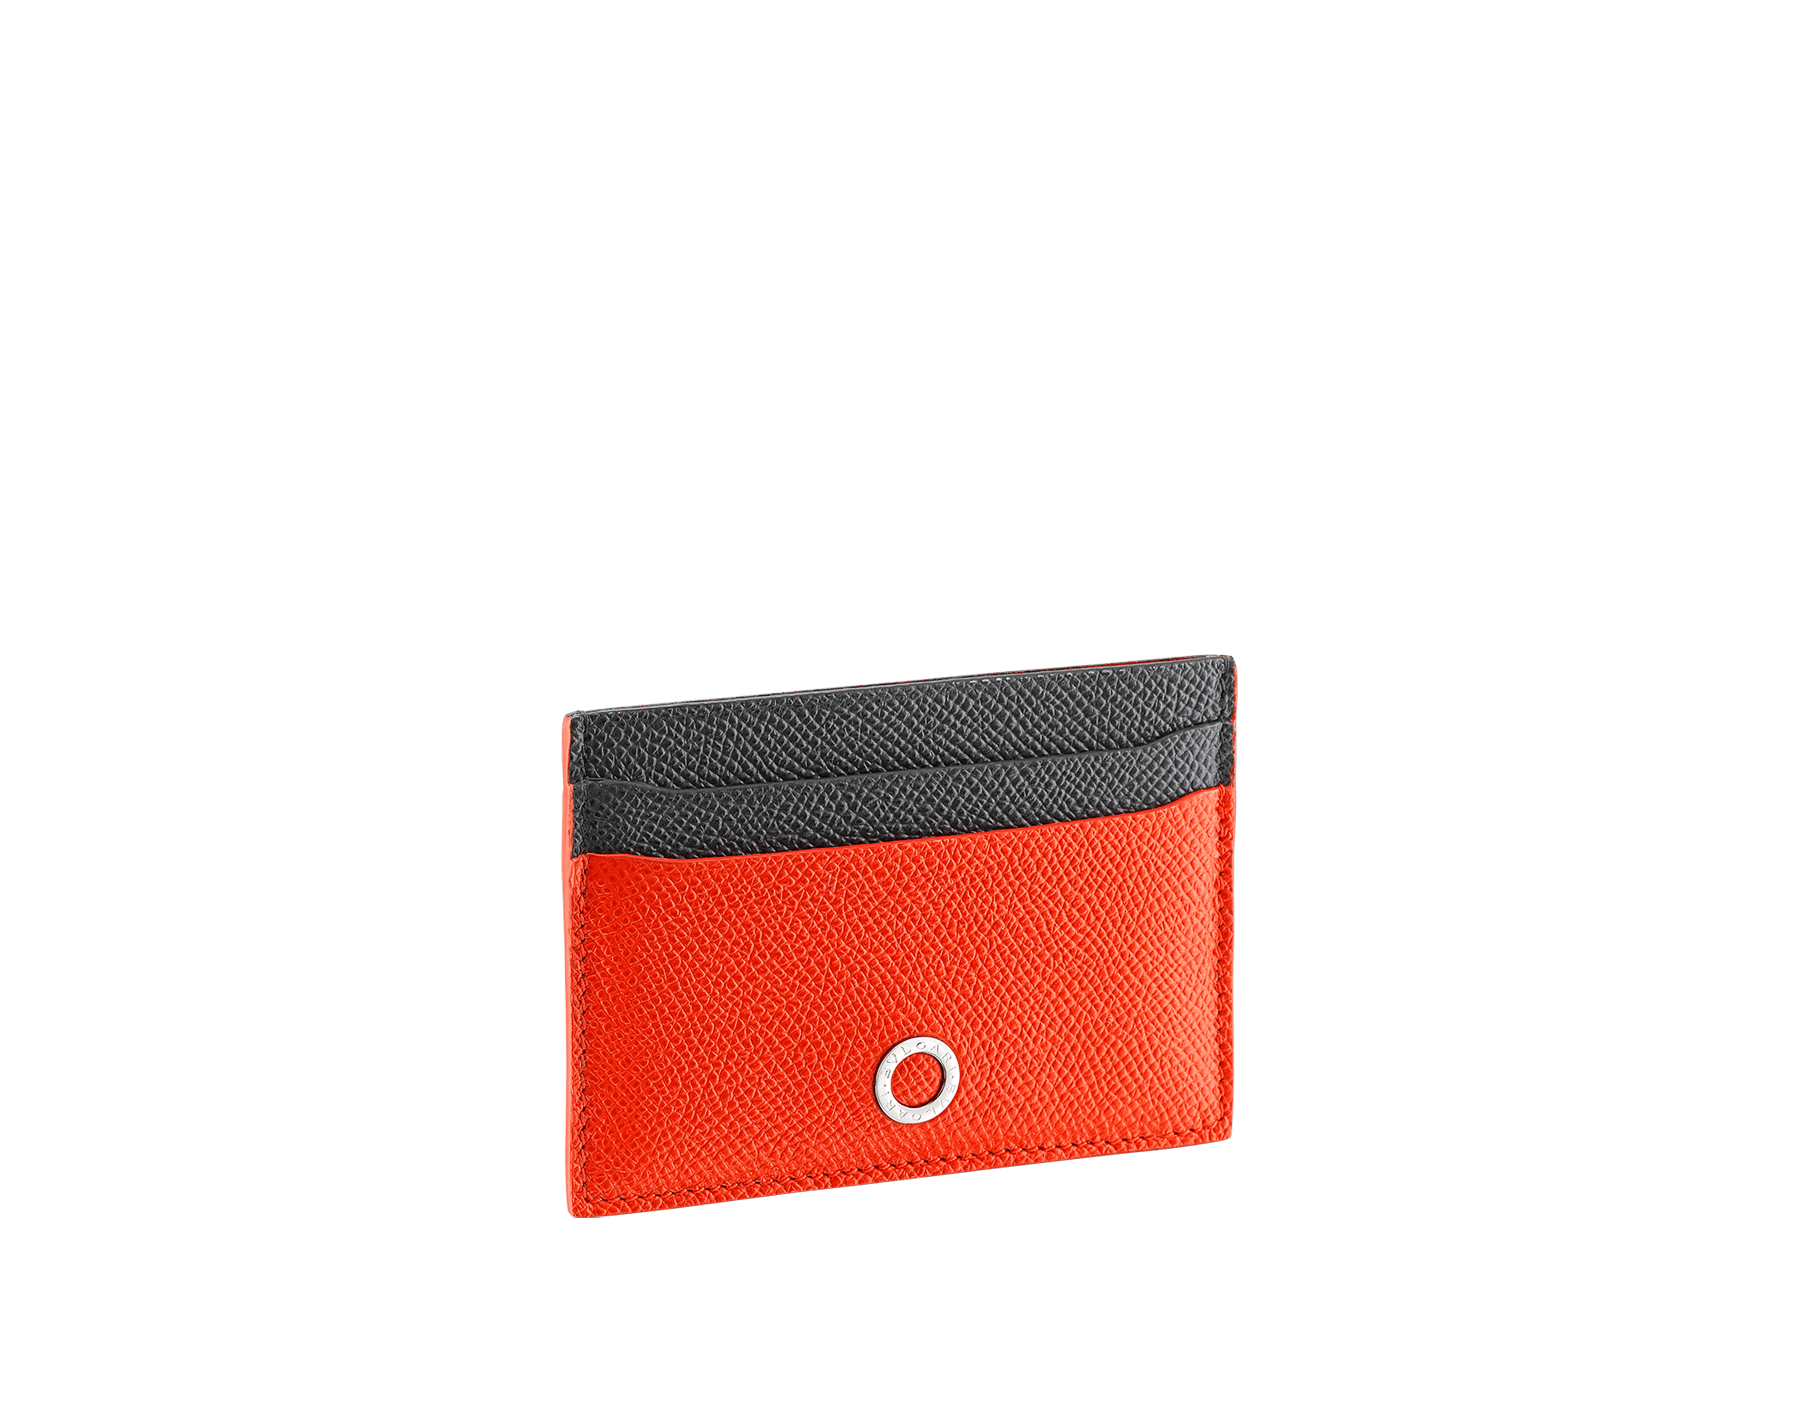 BVLGARI BVLGARI credit card holder in fire amber and charcoal diamond grain calf leather and fire amber nappa lining. Iconic logo decoration in palladium-plated brass. 289119 image 1